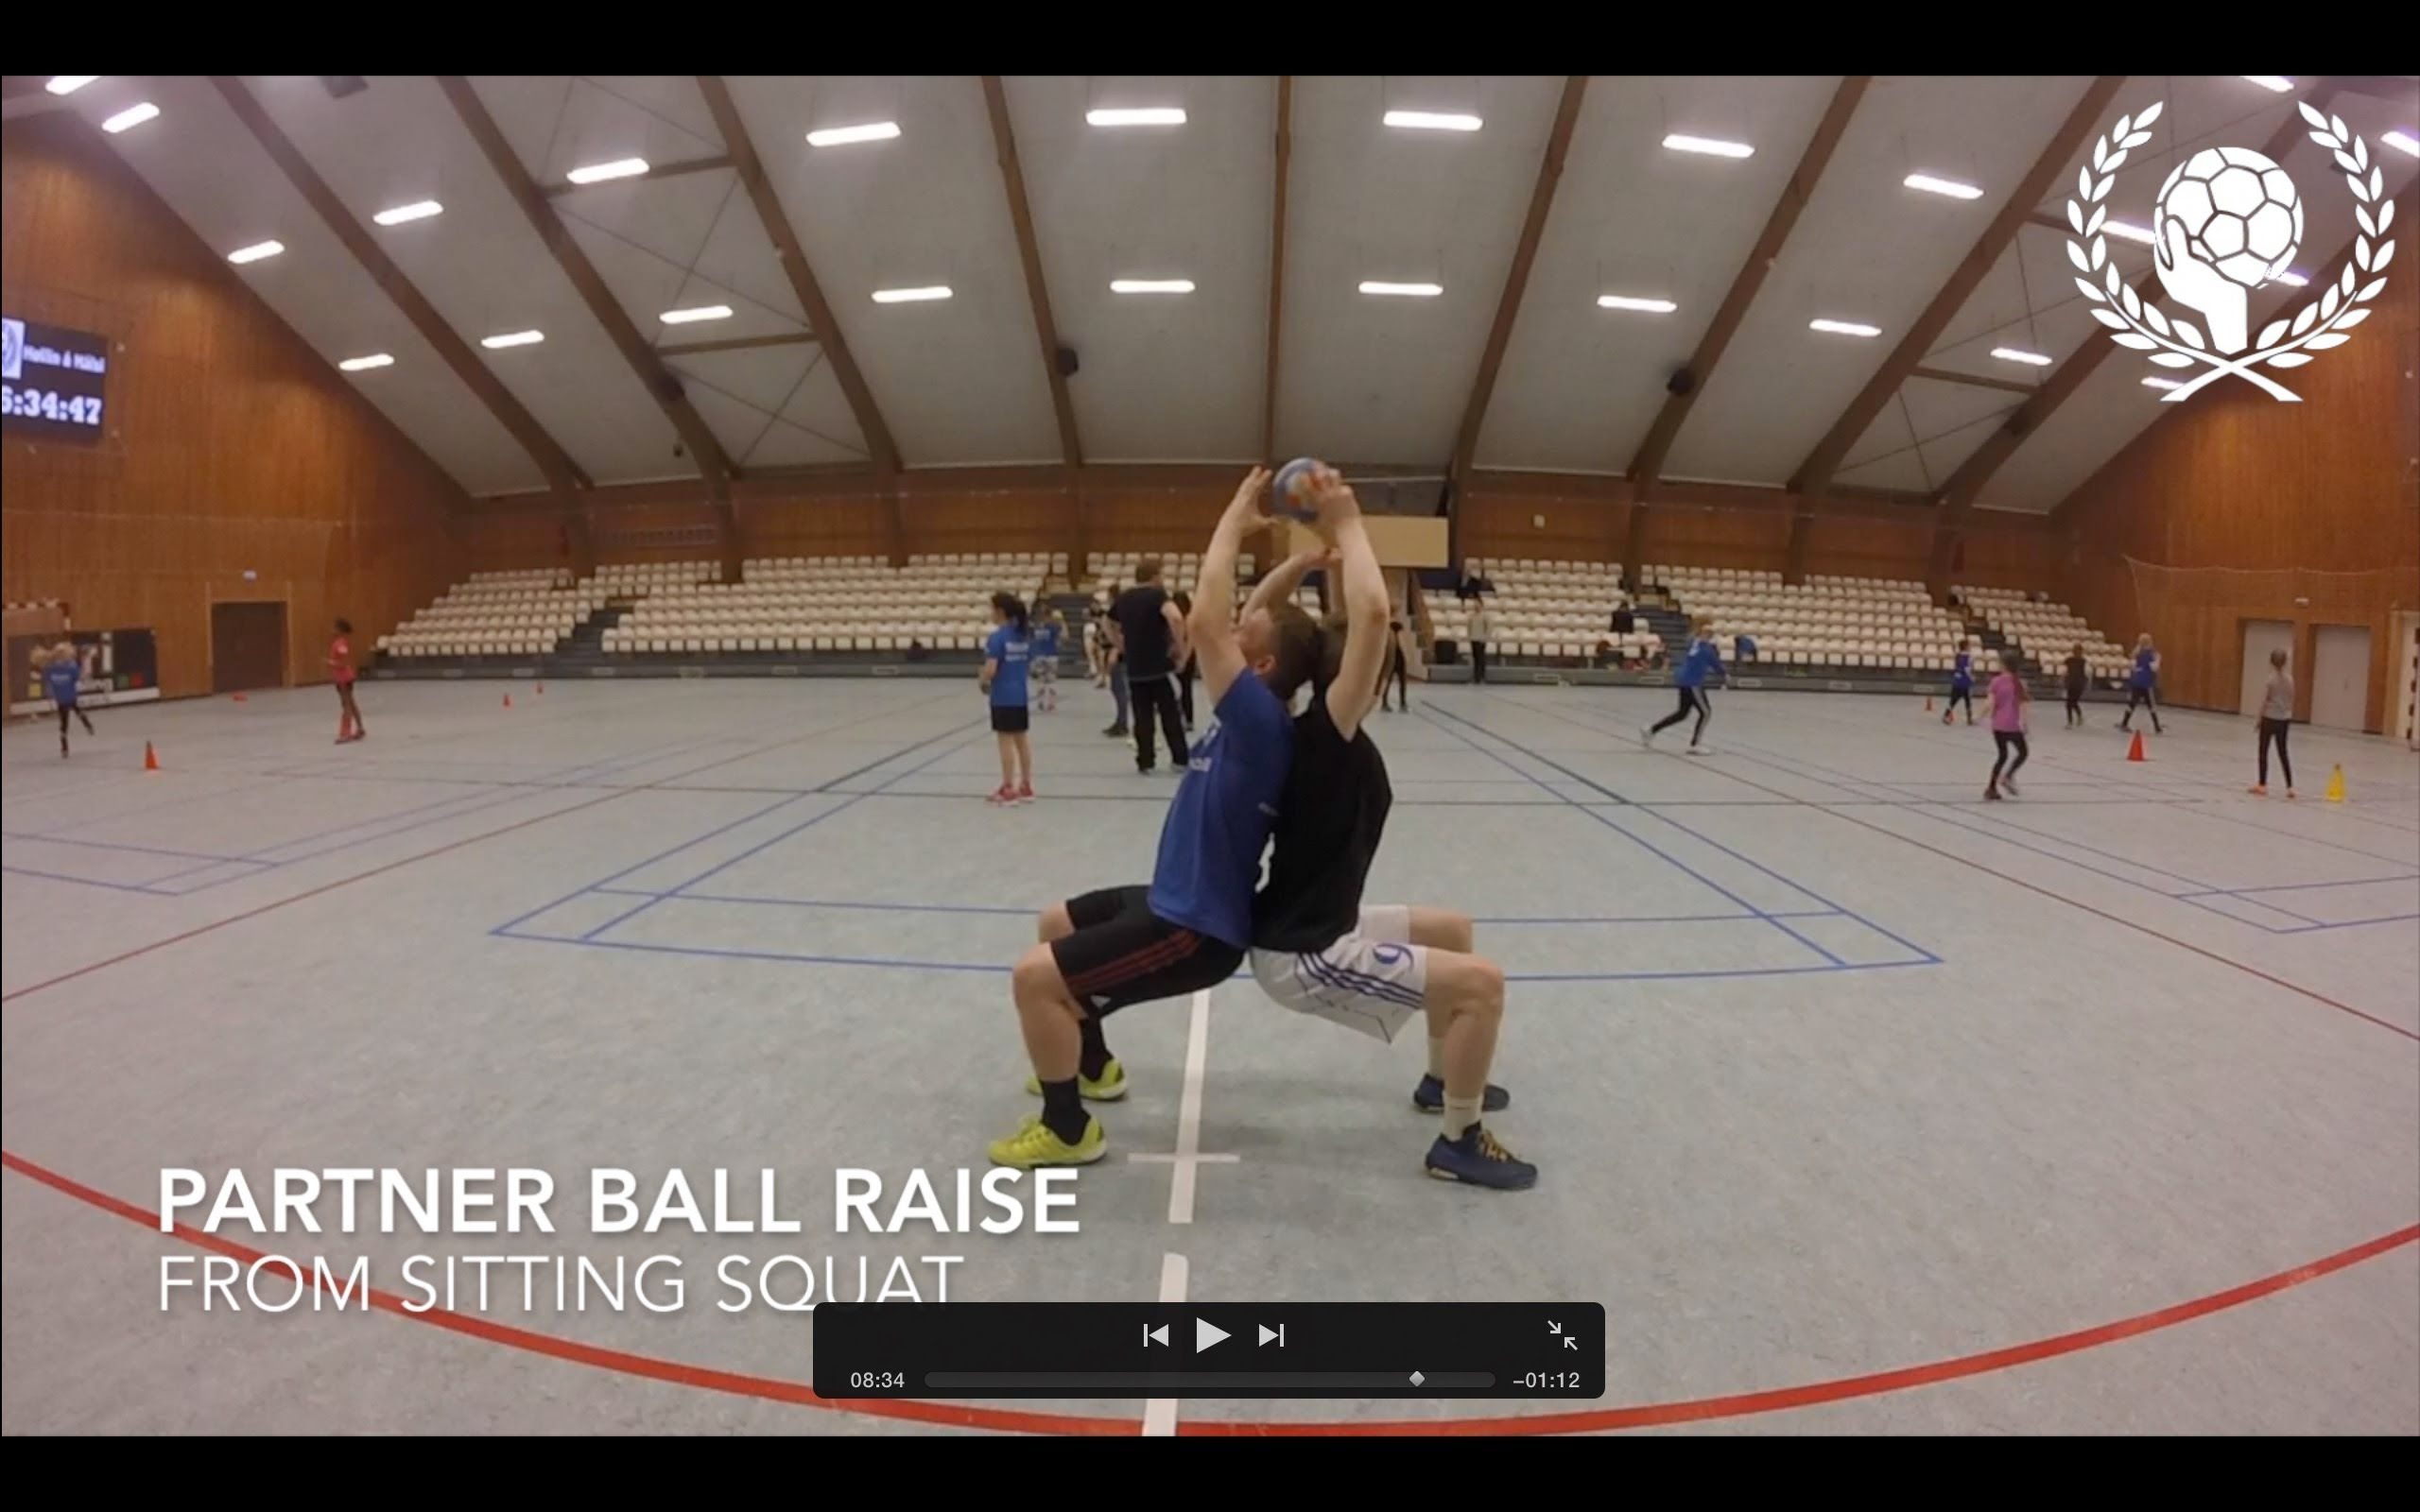 Handball Warmup Partner Physical Exercises Without Ball Volleyball Training Warmup Partner Workout